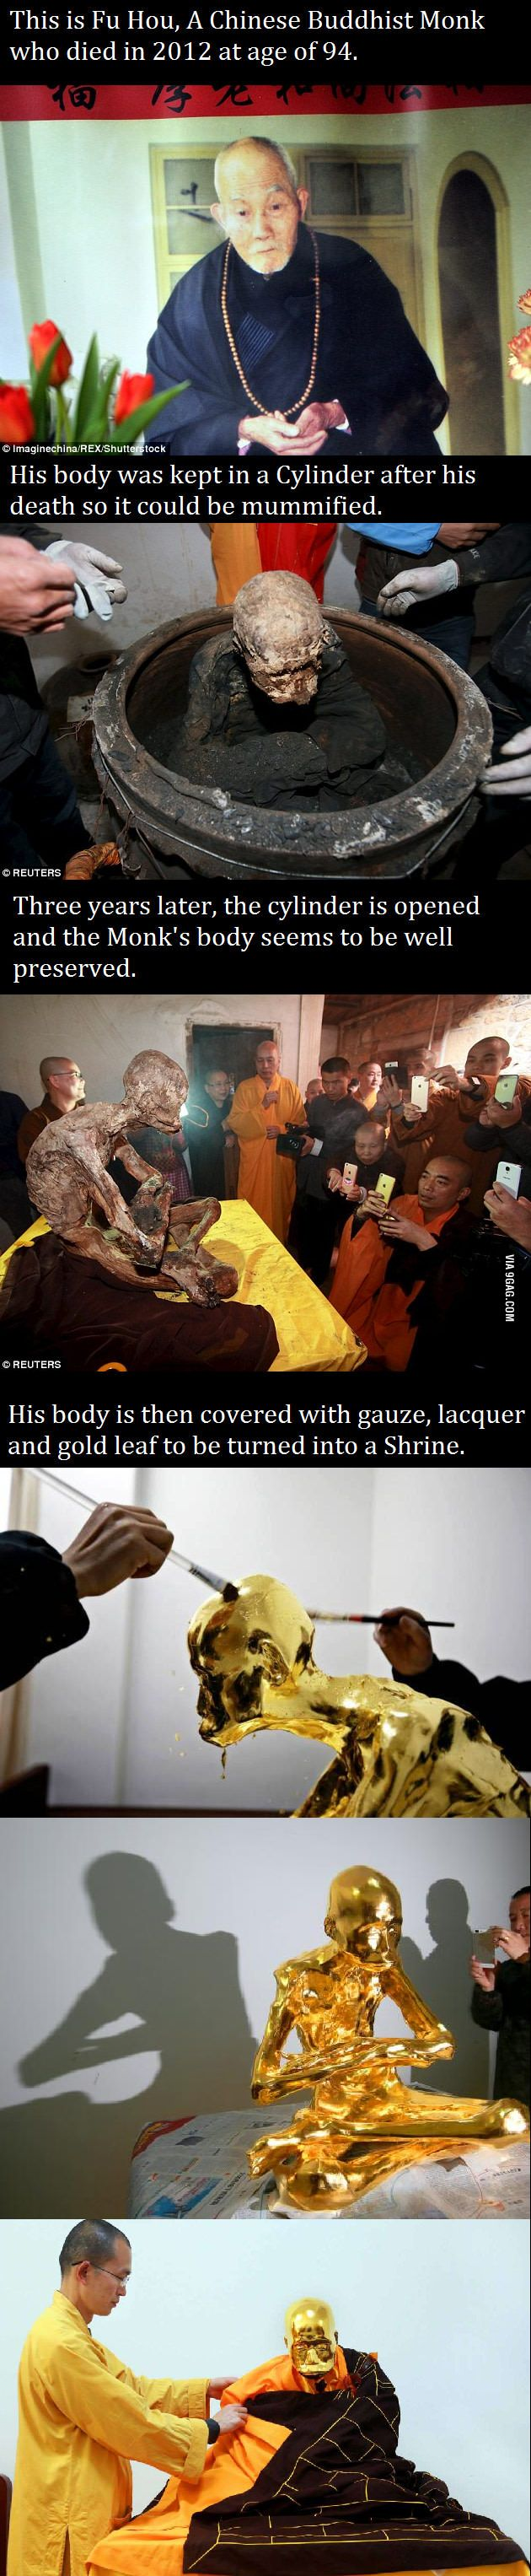 The death of a monk and his subsequent transformation into a human shrine to help others of his religion.